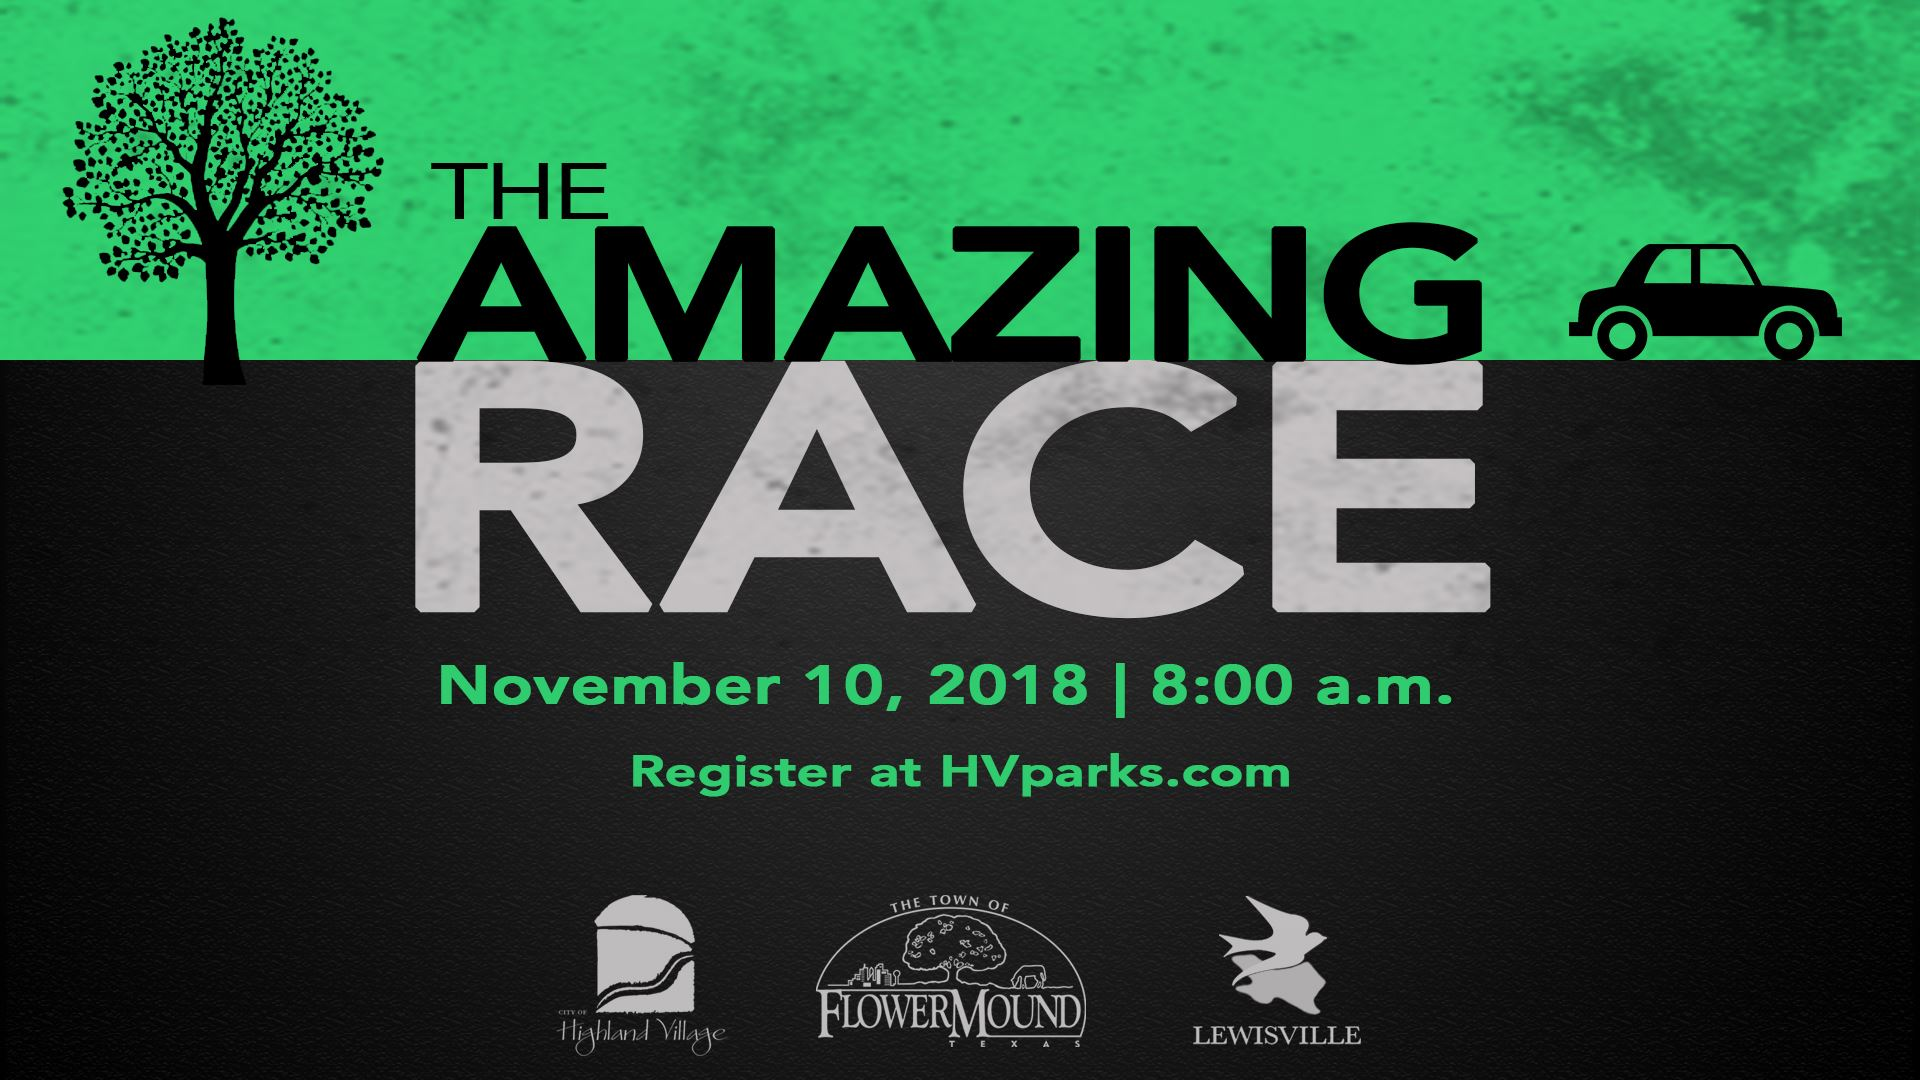 Amazing Race Flyer JPEG